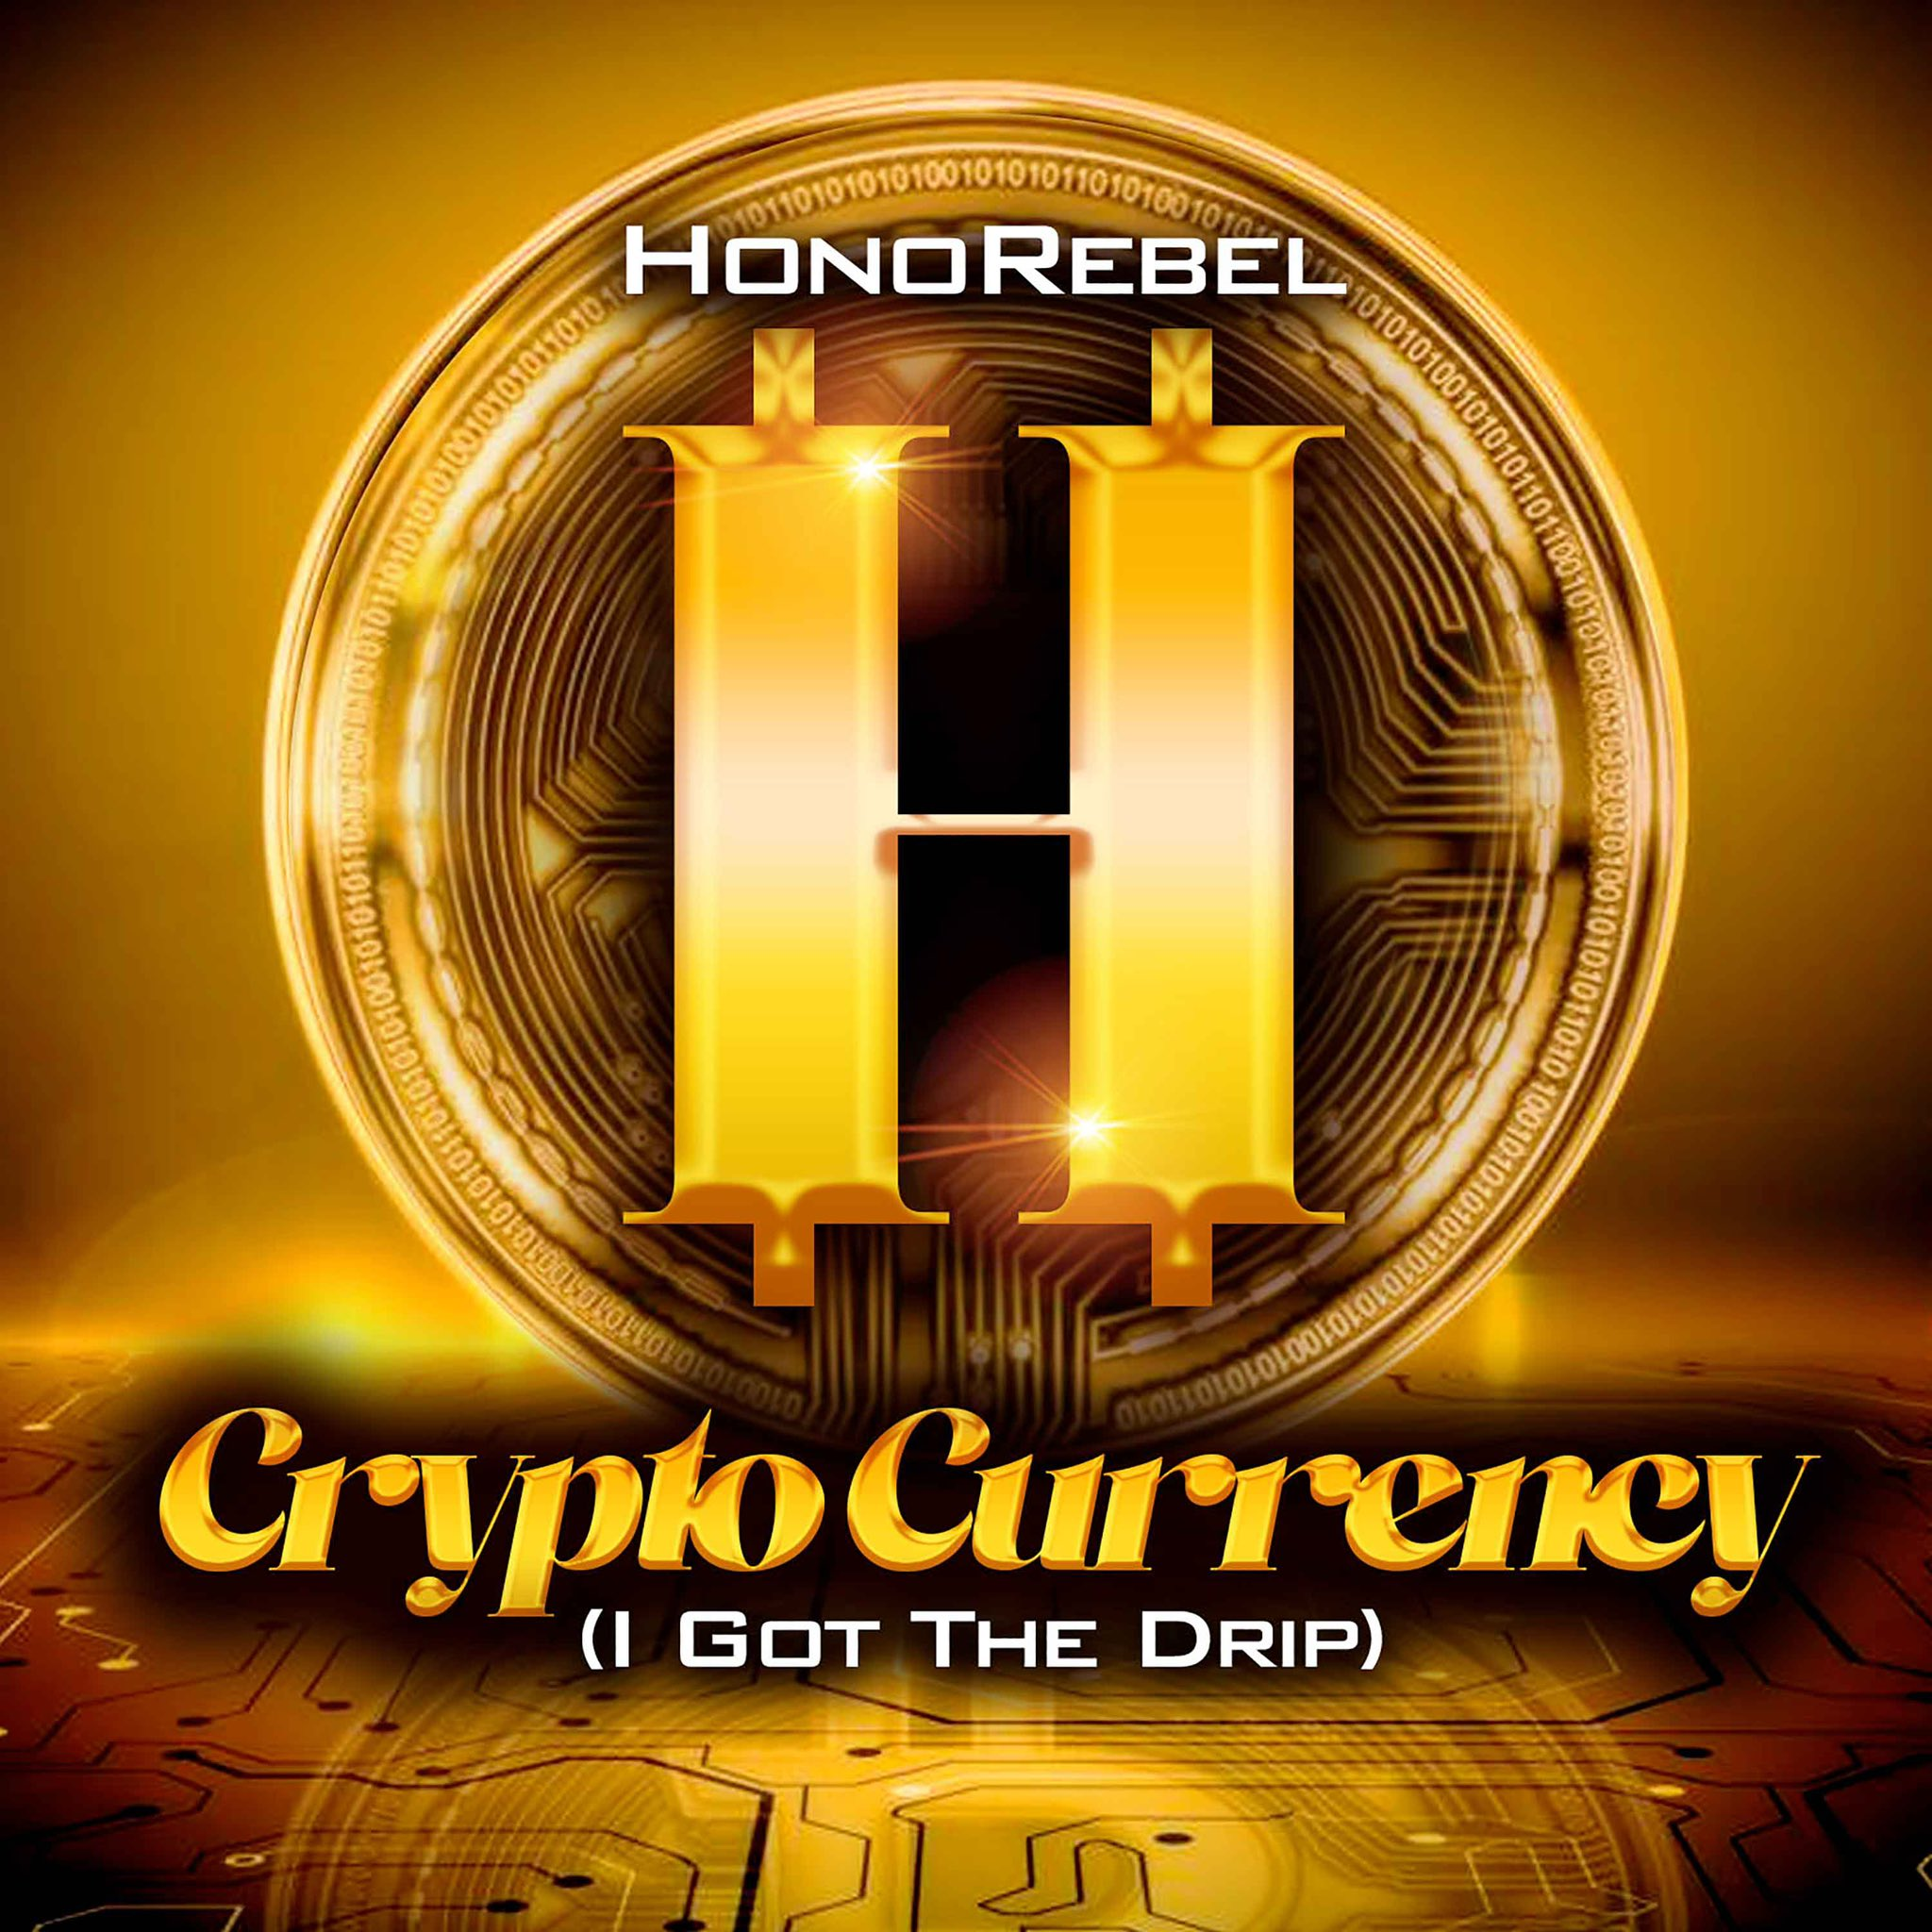 CD cover artwork design for reggae song titled Crypto Currency by reggae artist Honorebel from Miami, Florida, USA. Stream and download on Spotify, Apple Music and popular digital music services in 2021.